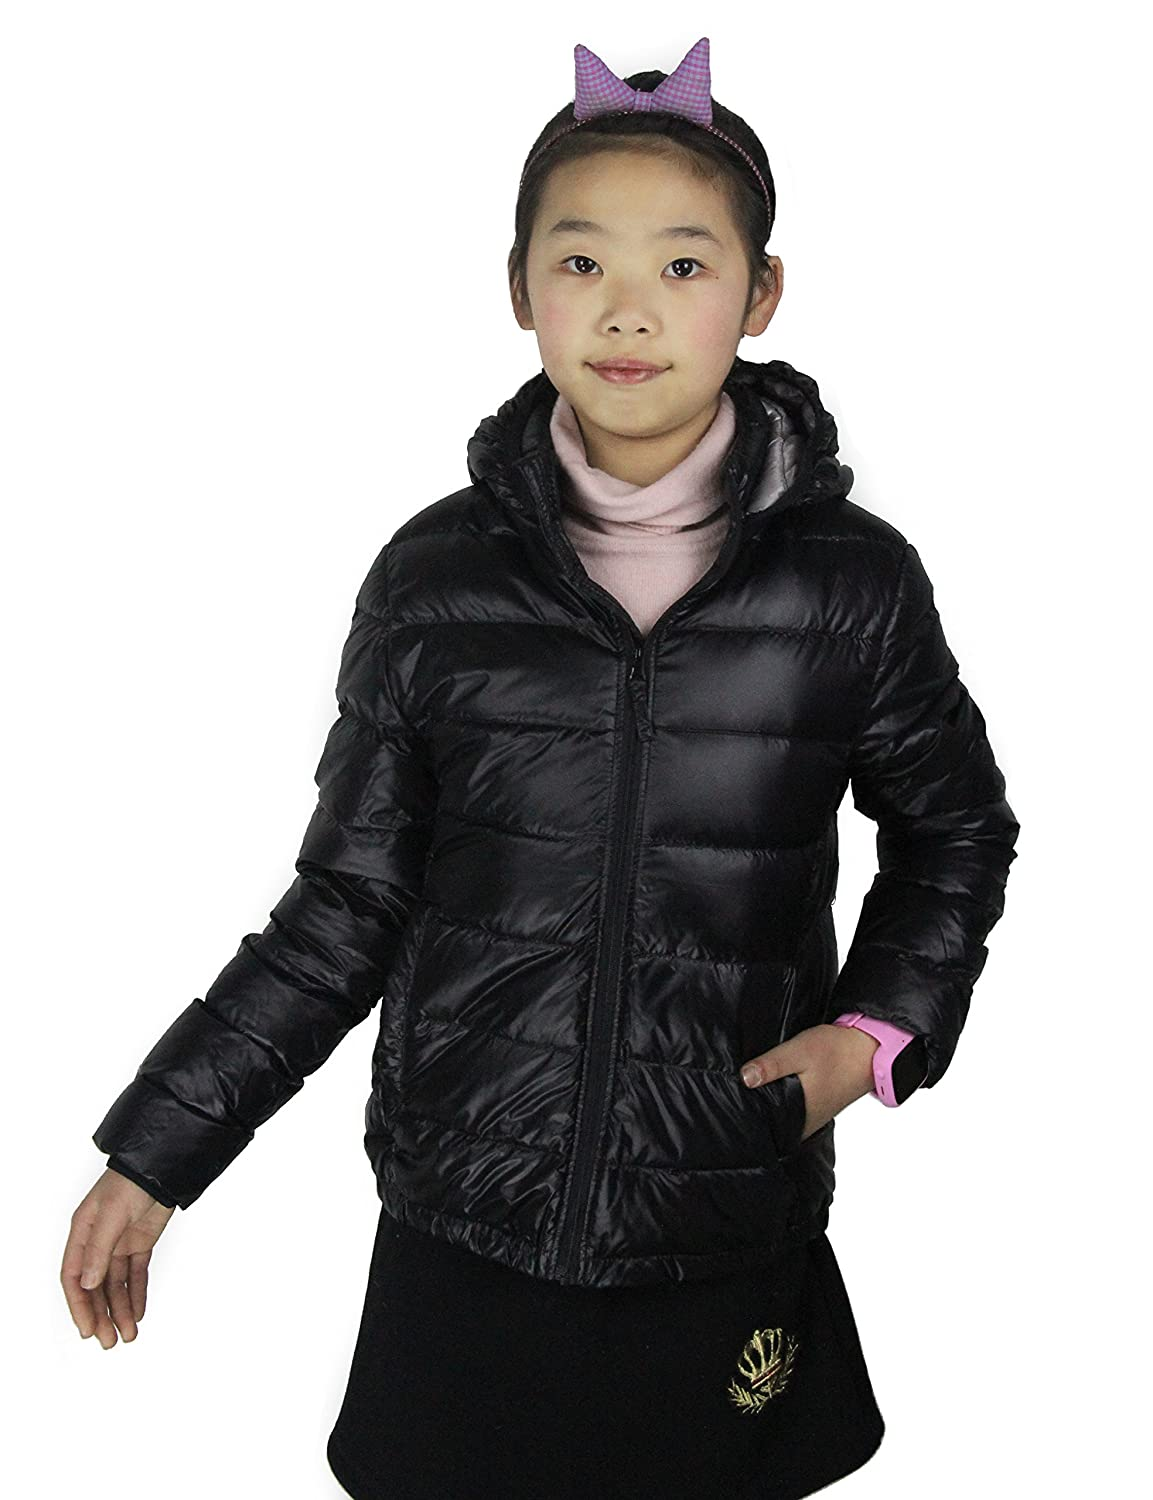 CHERRY CHICK Kid's Ultralight Packable Hoodie Down Parka Jacket 16080120PMT